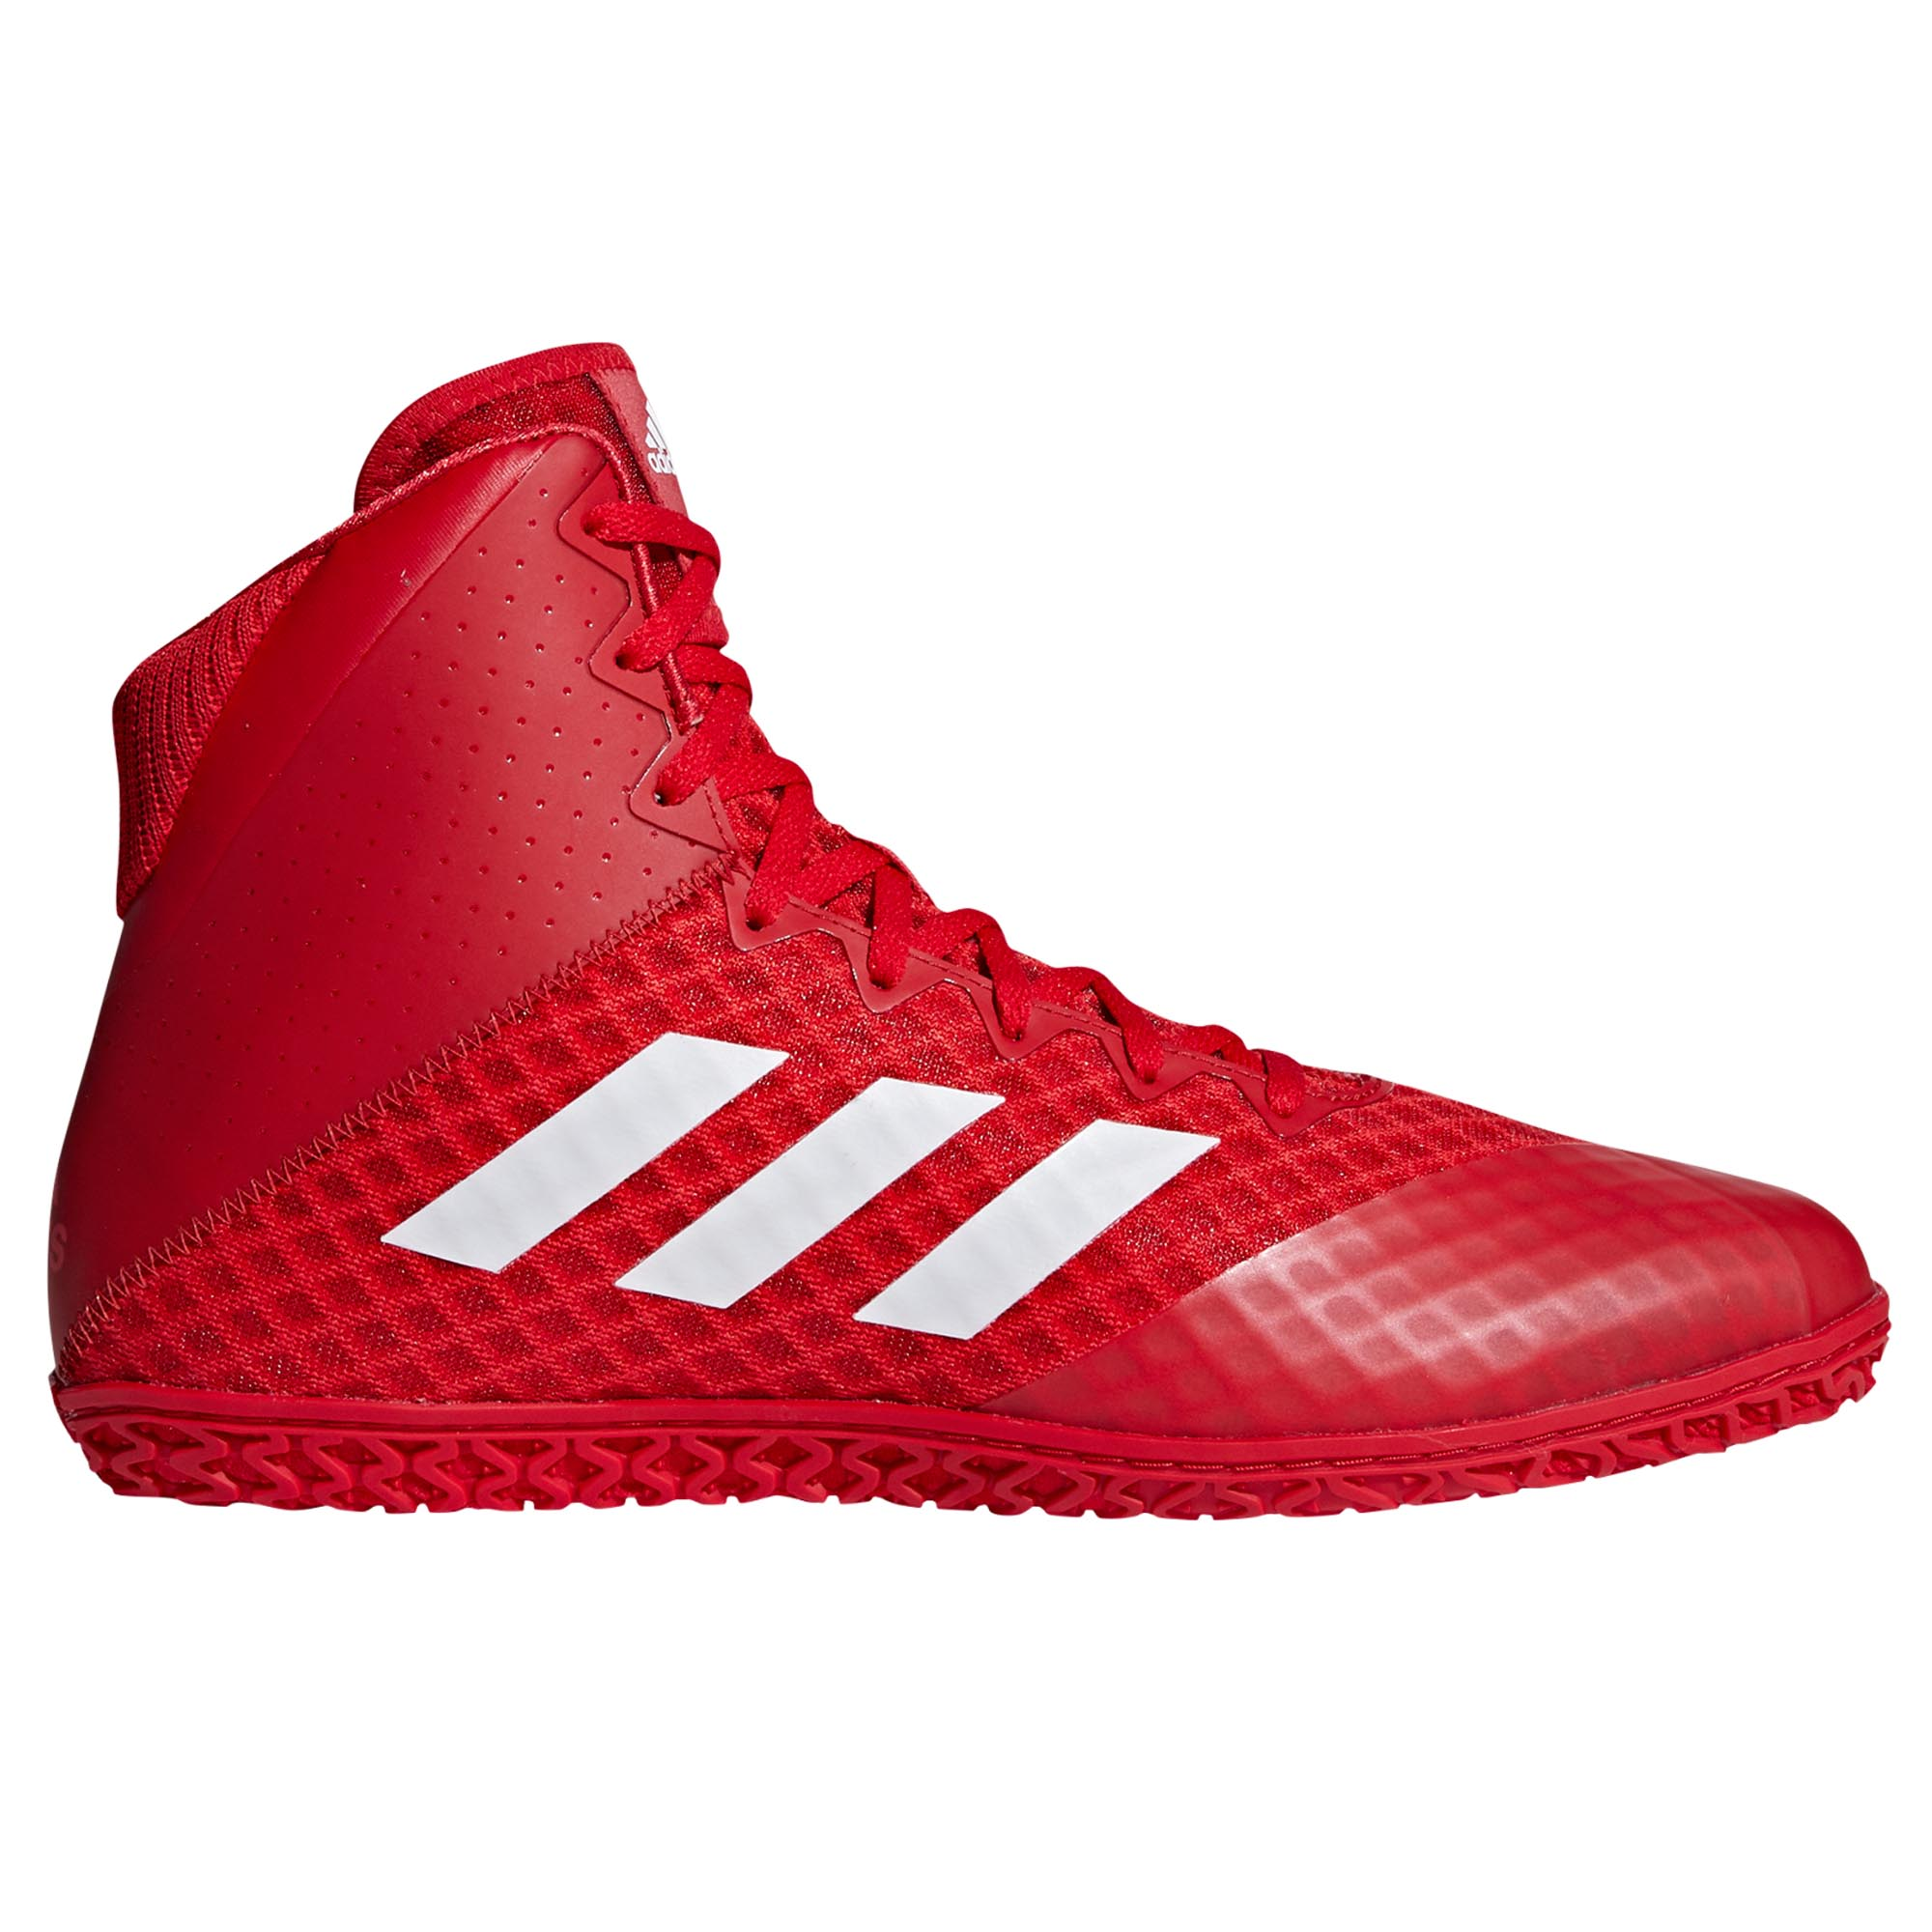 239a48cbec1 Image is loading adidas-Mat-Wizard-4-Mens-Adult-Wrestling-Trainer-